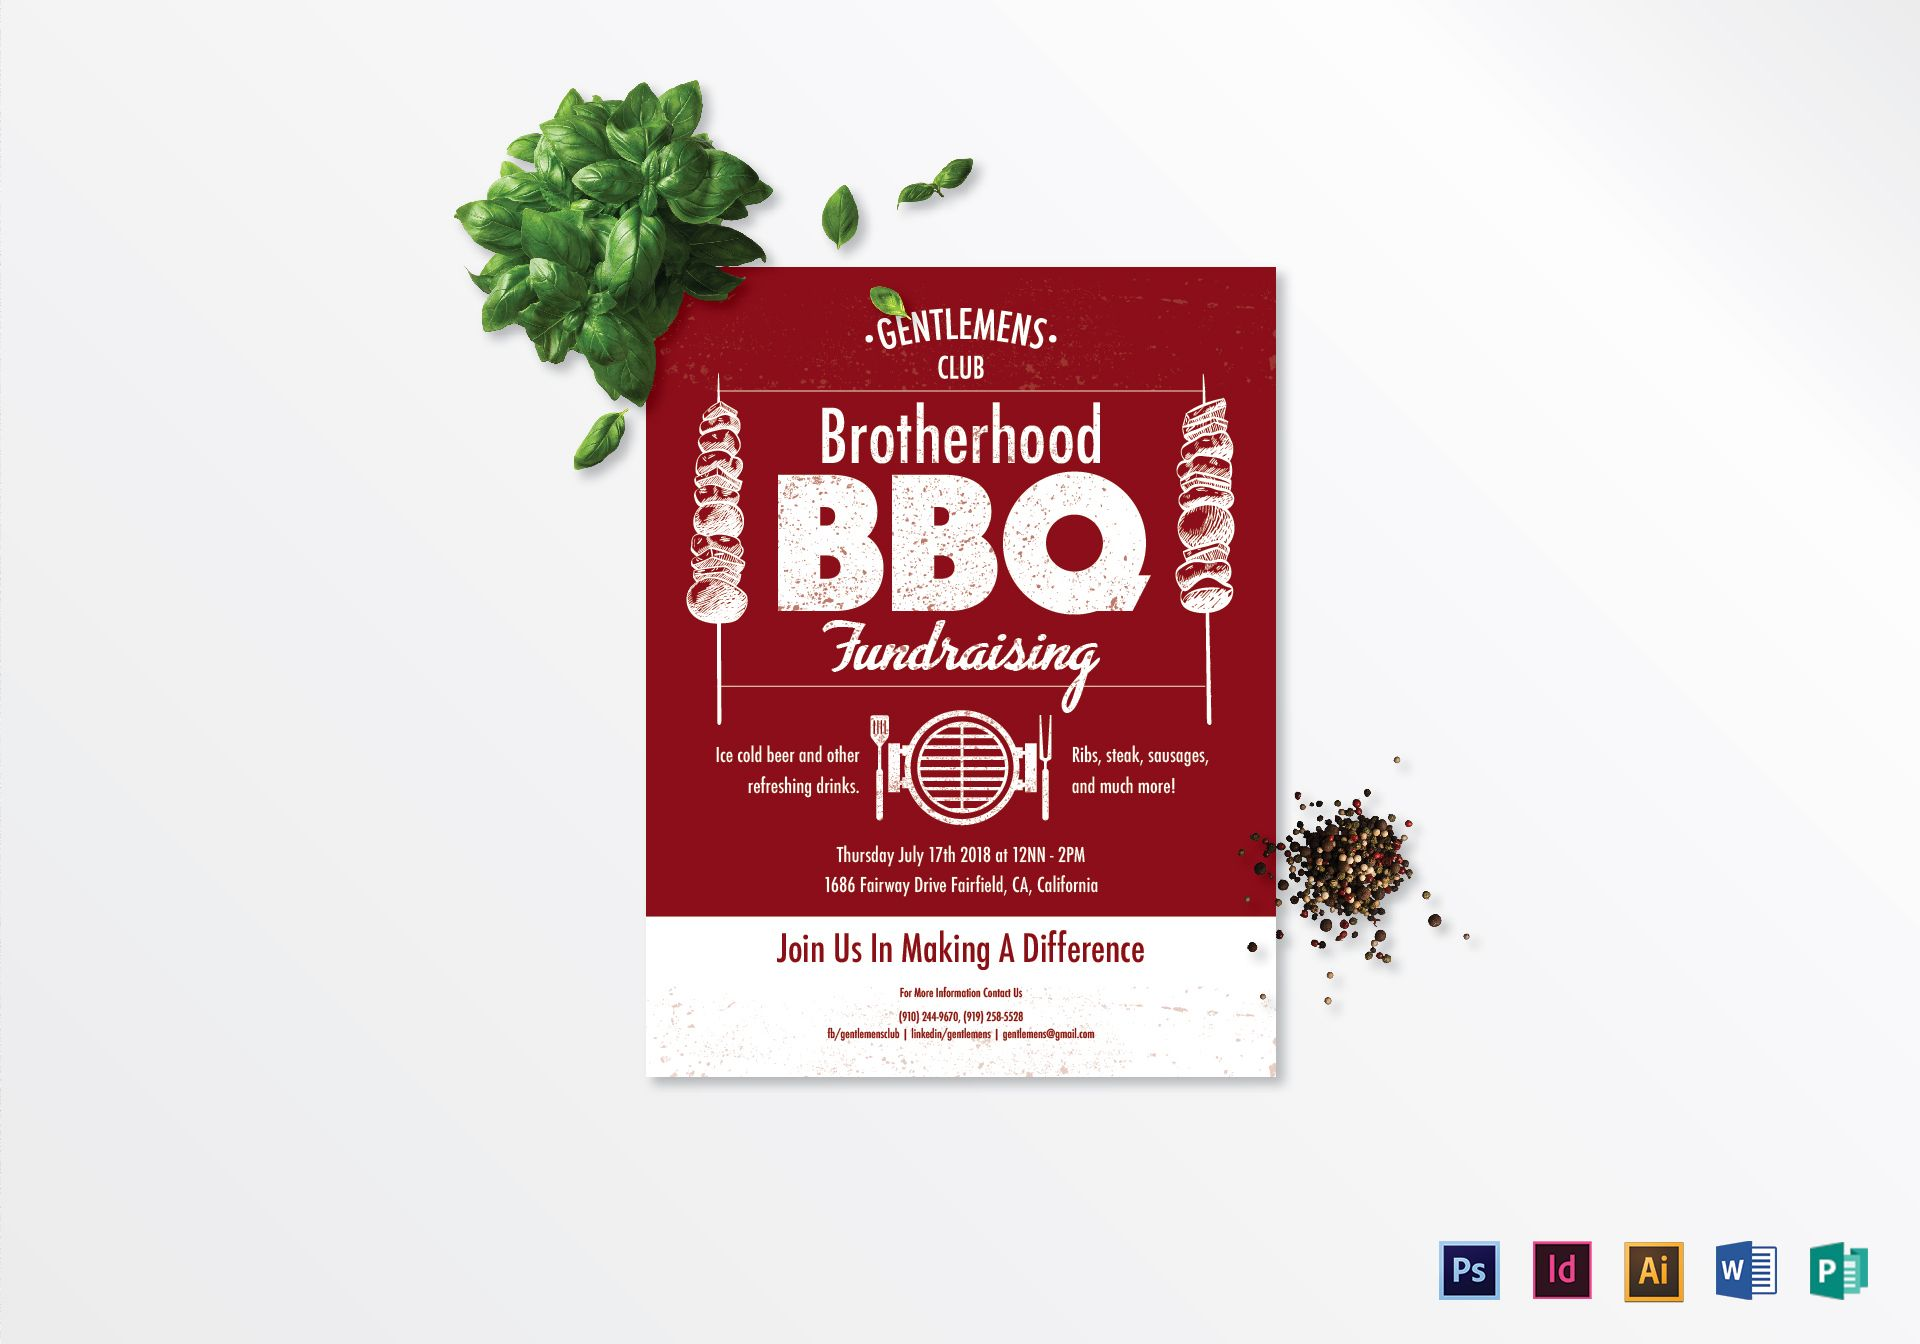 Barbecue Fundraising Flyer Design Template In PSD Word Publisher - Fundraiser flyer template word